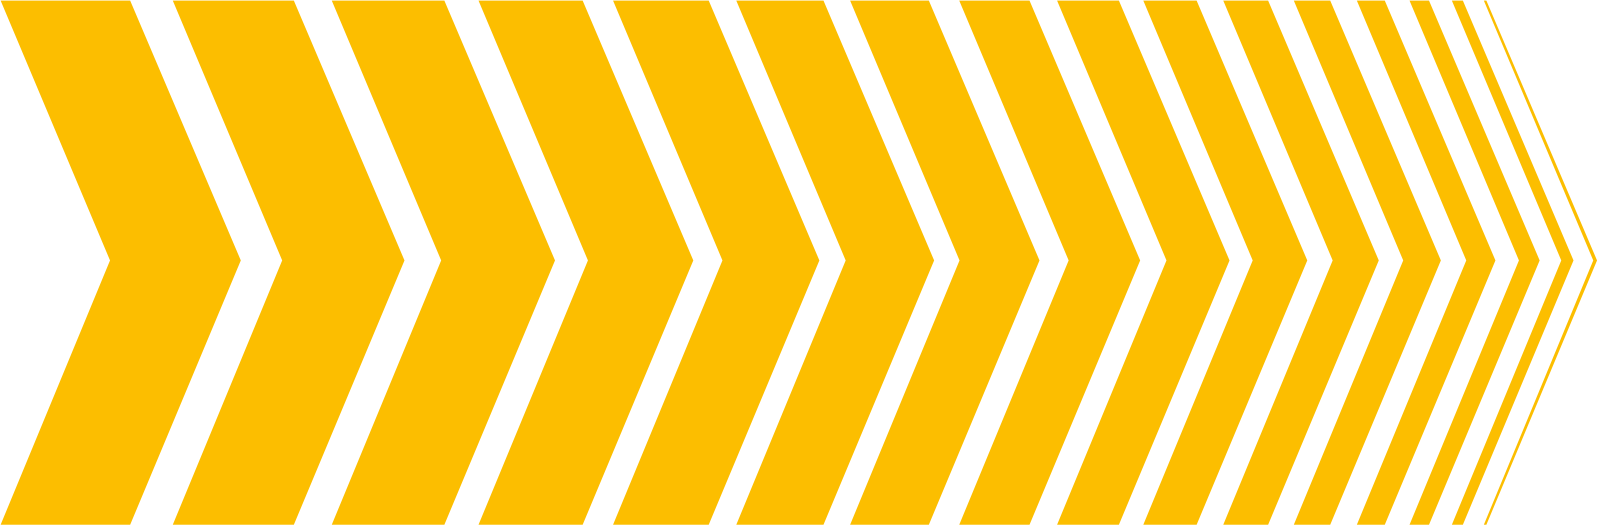 Road yellow zebra arrow by QuazarX